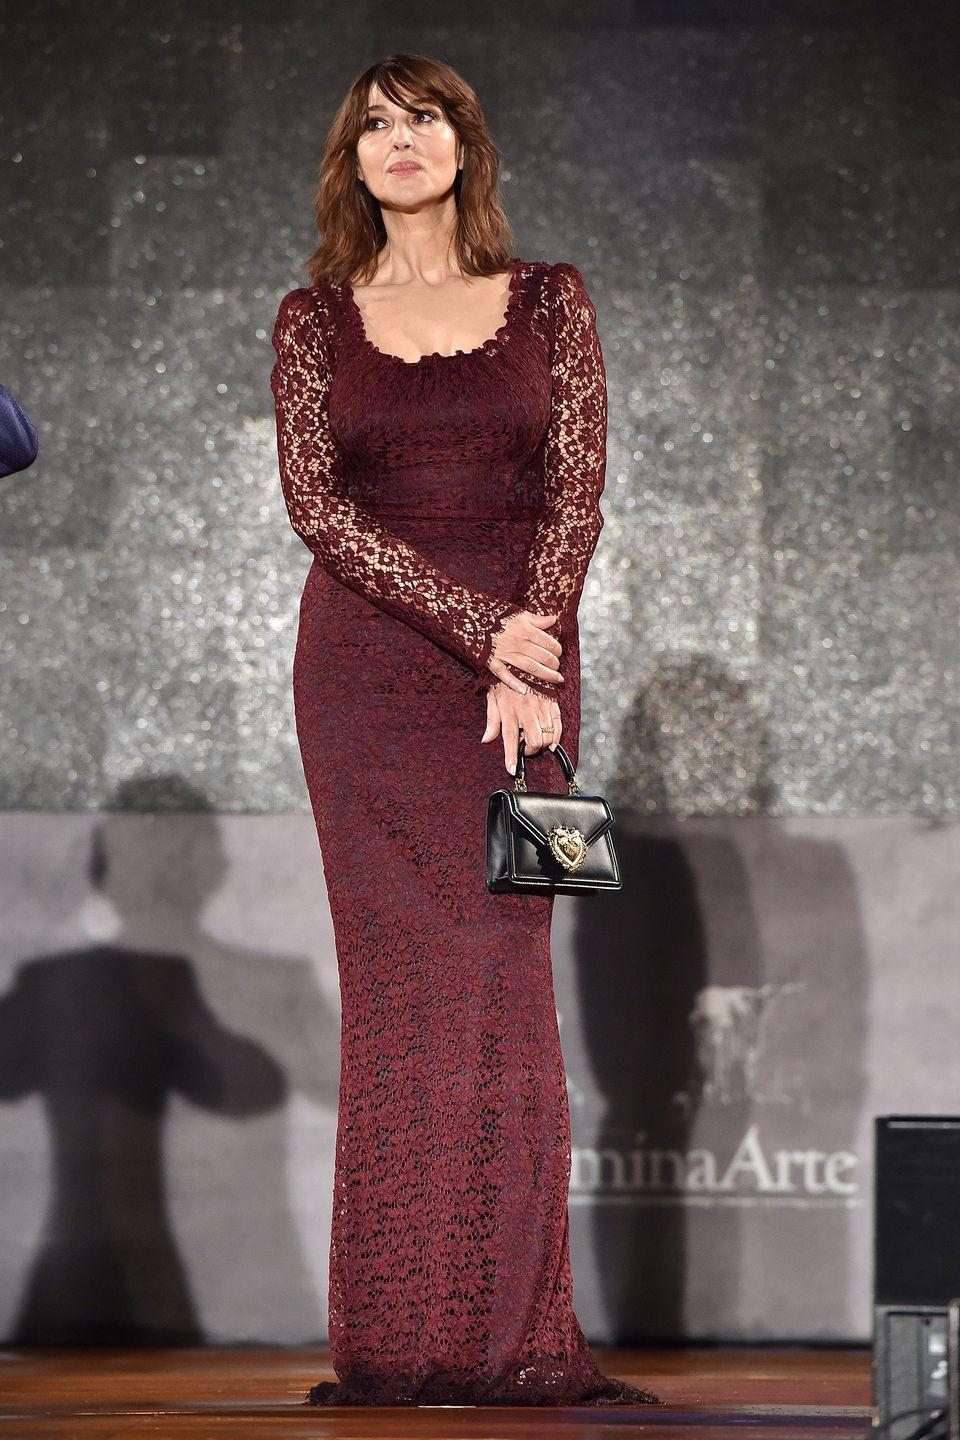 <p><strong>18 July </strong>Monica Bellucci looked elegant in a burgundy lace Dolce & Gabbana dress and Devotion bag at the Taormina Film Festival in Italy, where she was a guest of honour alongside Domenico Dolce and Stefano Gabbana. </p>